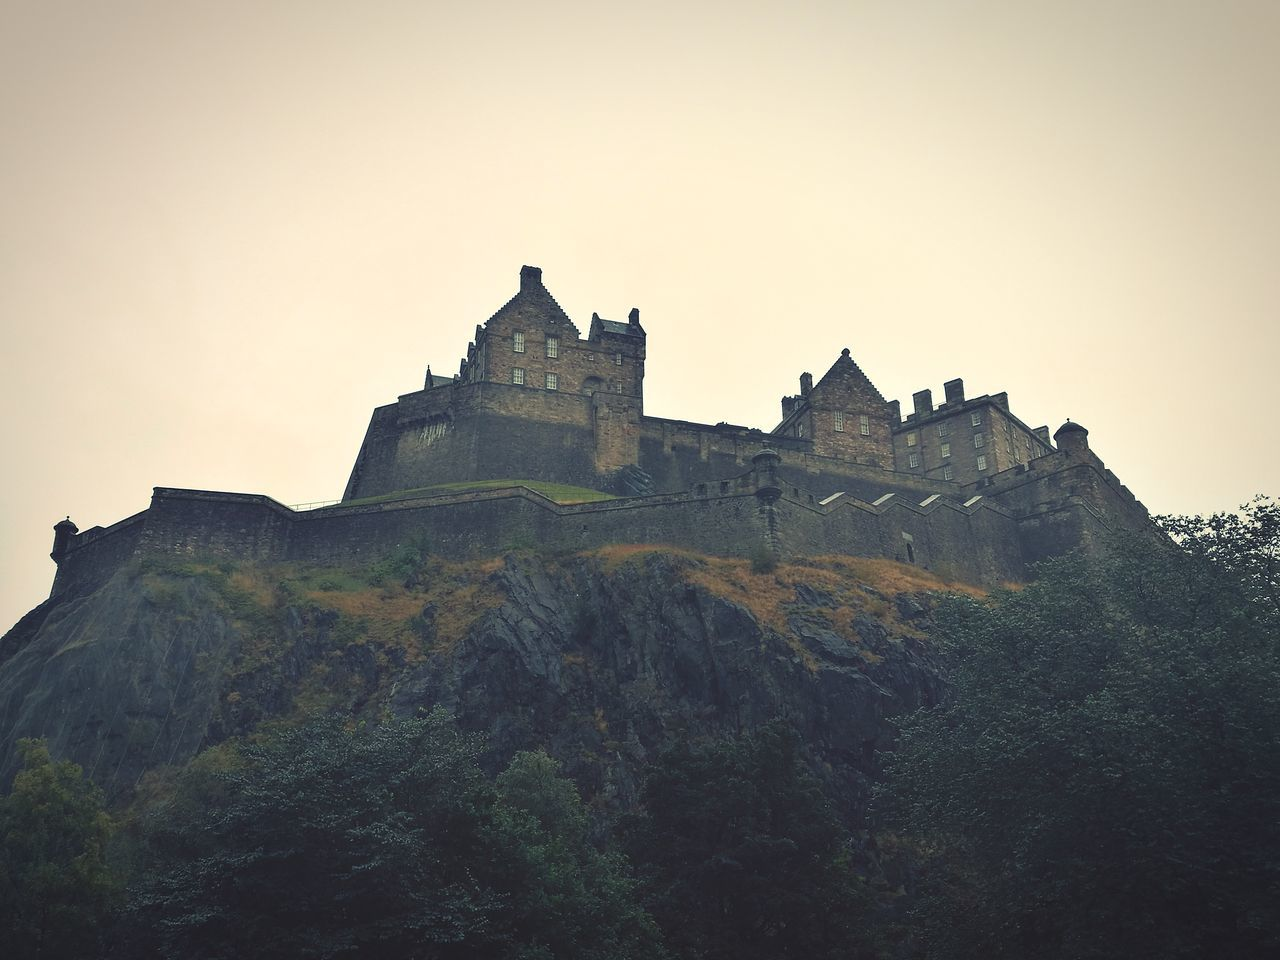 architecture, history, low angle view, no people, mountain, castle, sky, clear sky, outdoors, day, nature